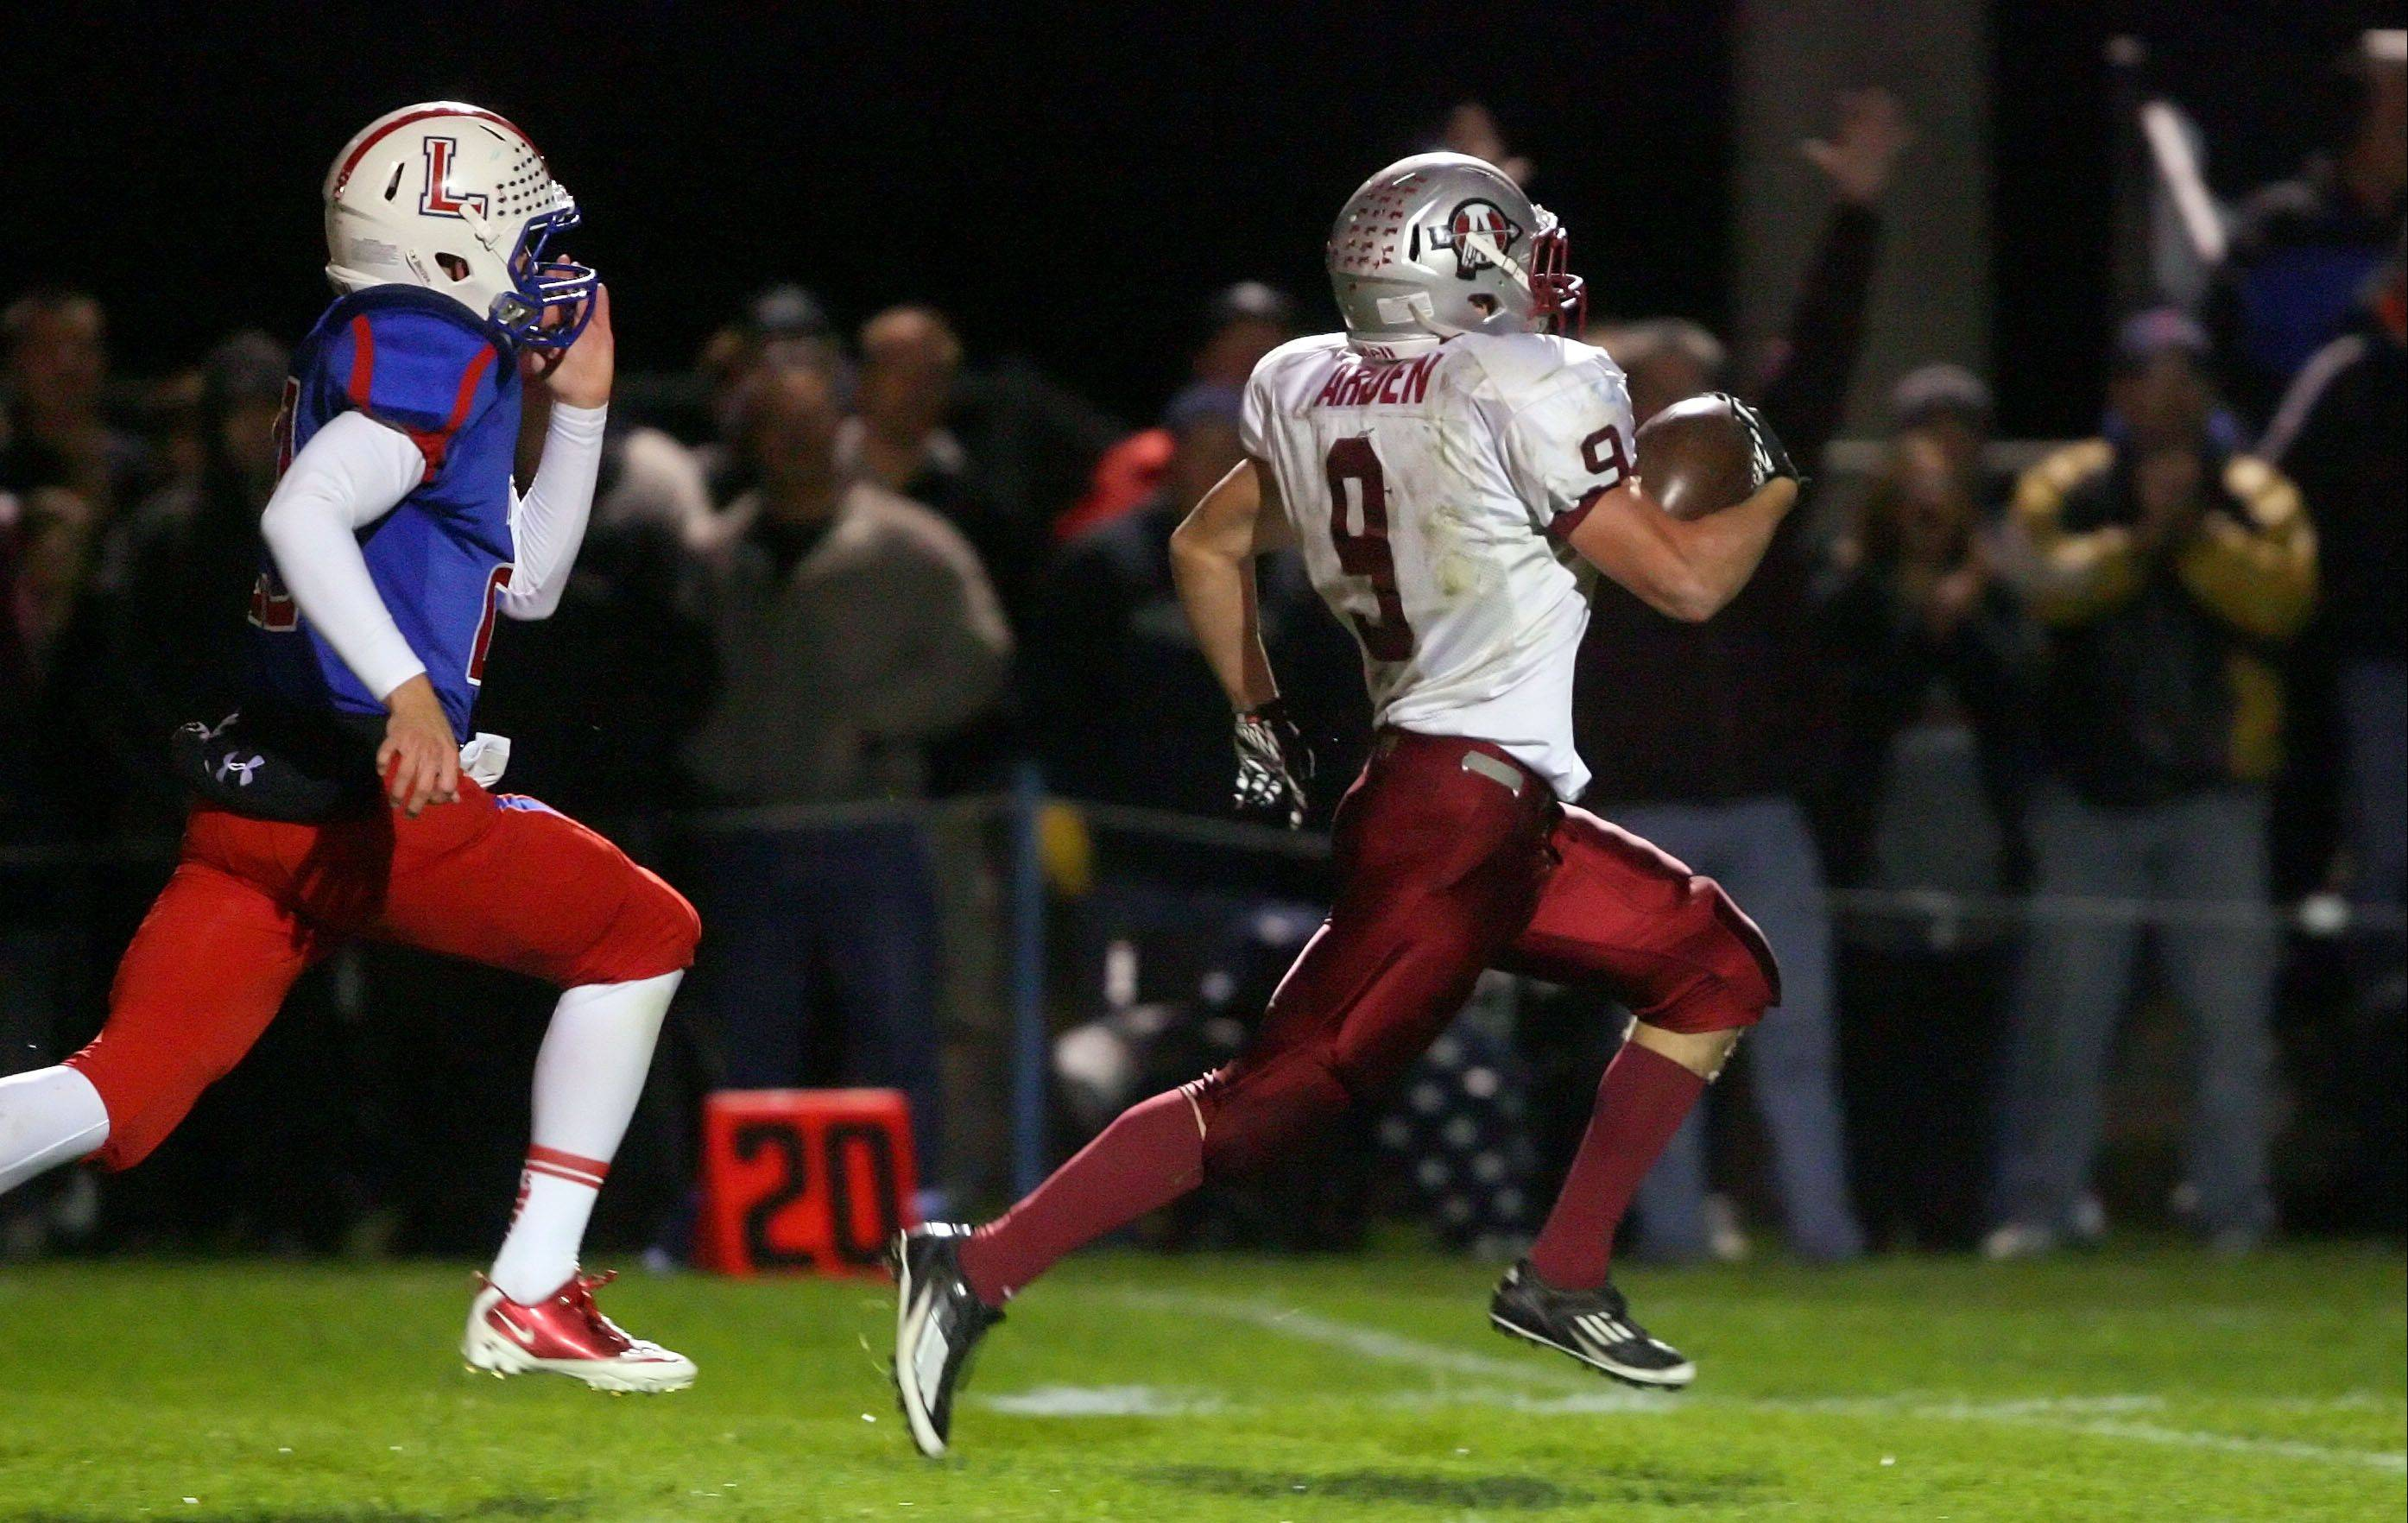 Antioch�s Danny Arden, right, stays ahead of Lakes� Levi Haymaker for a touchdown during Friday night in Lake Villa.